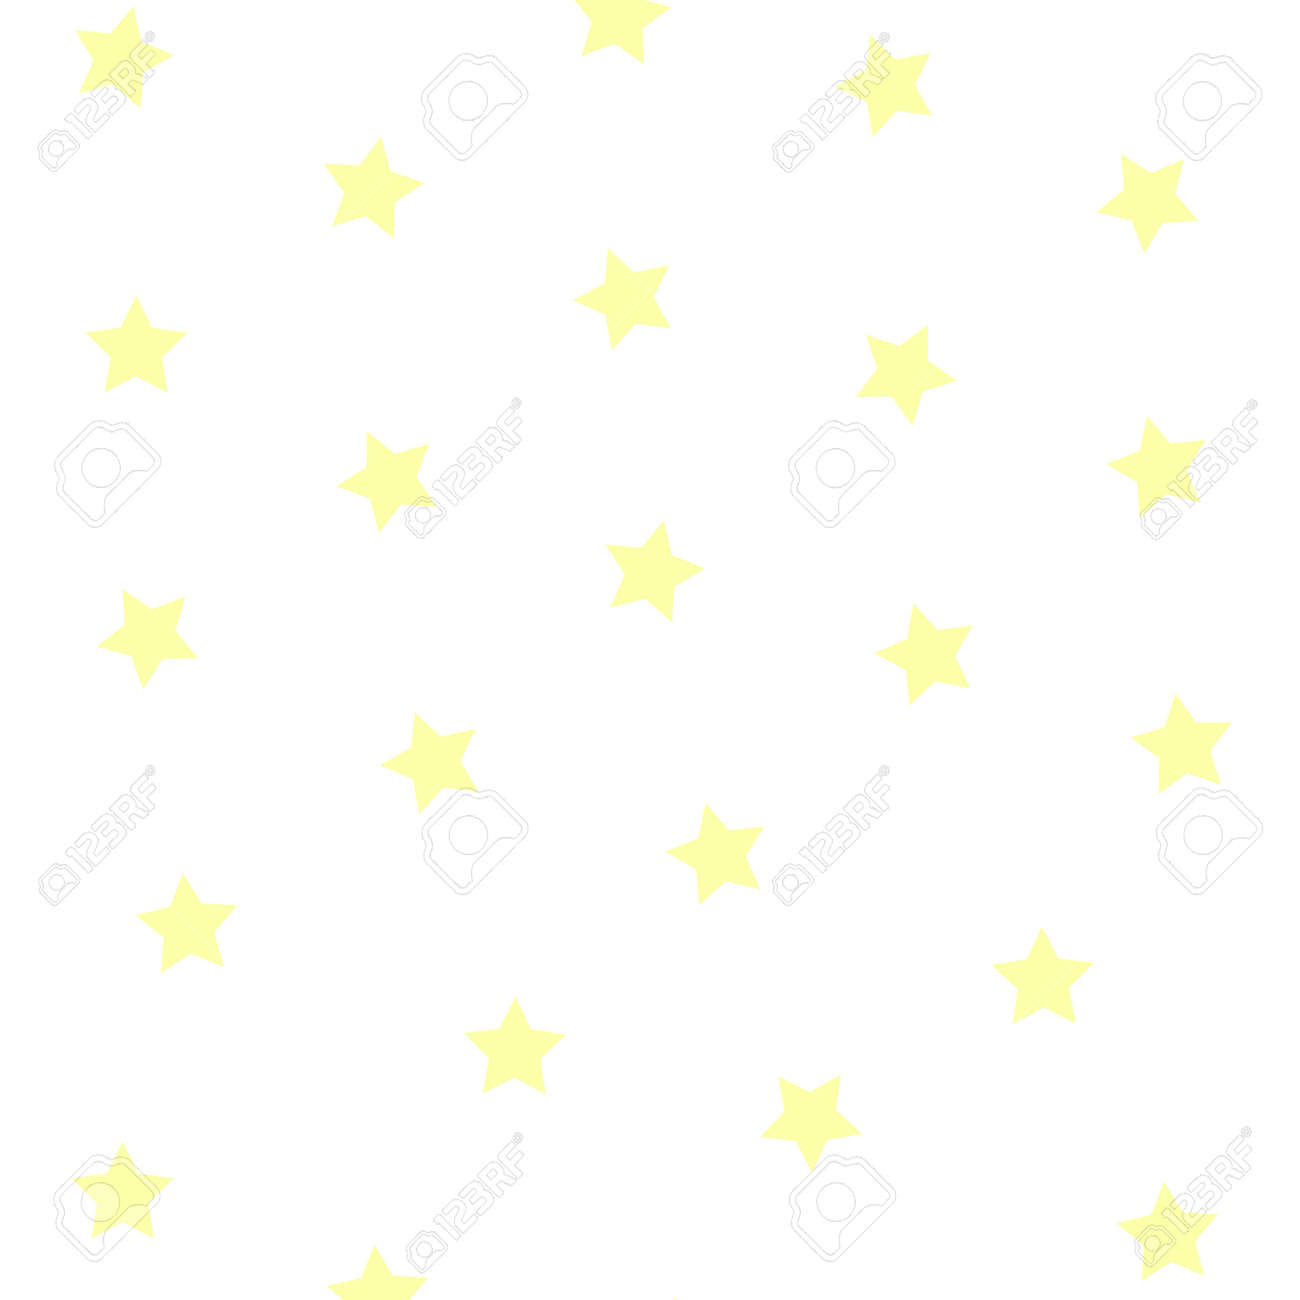 Star Template Containing Many Particles Christmas Concept Stock